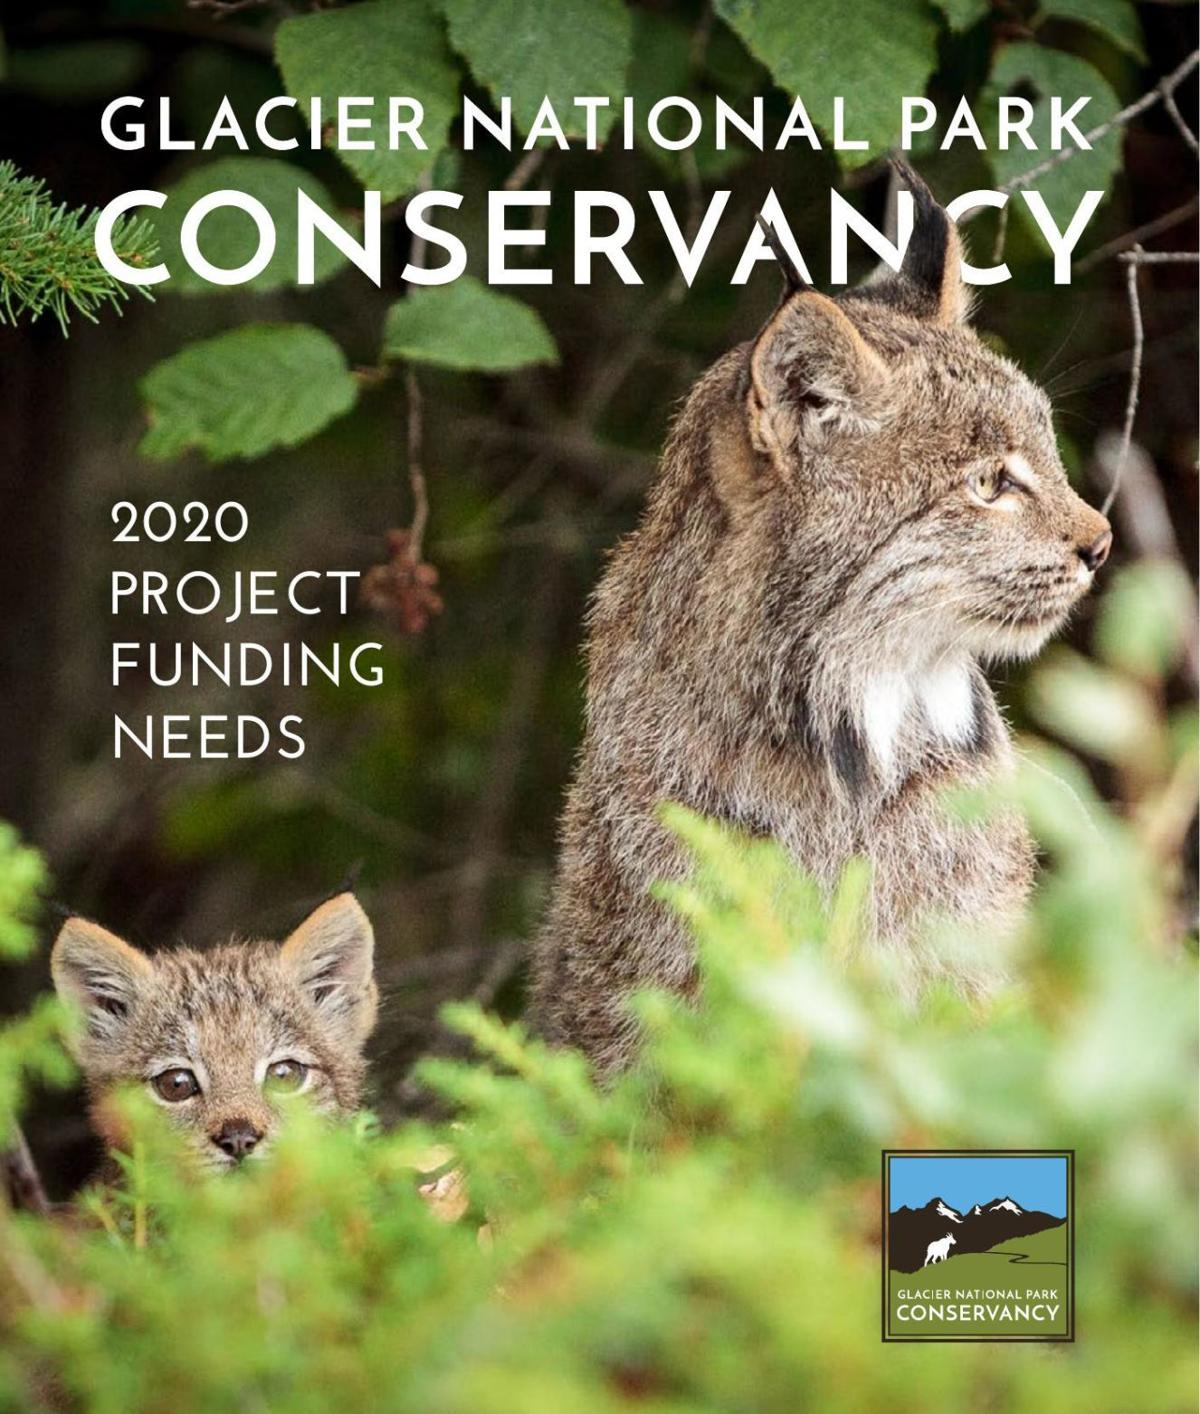 GNP Conservancy projects